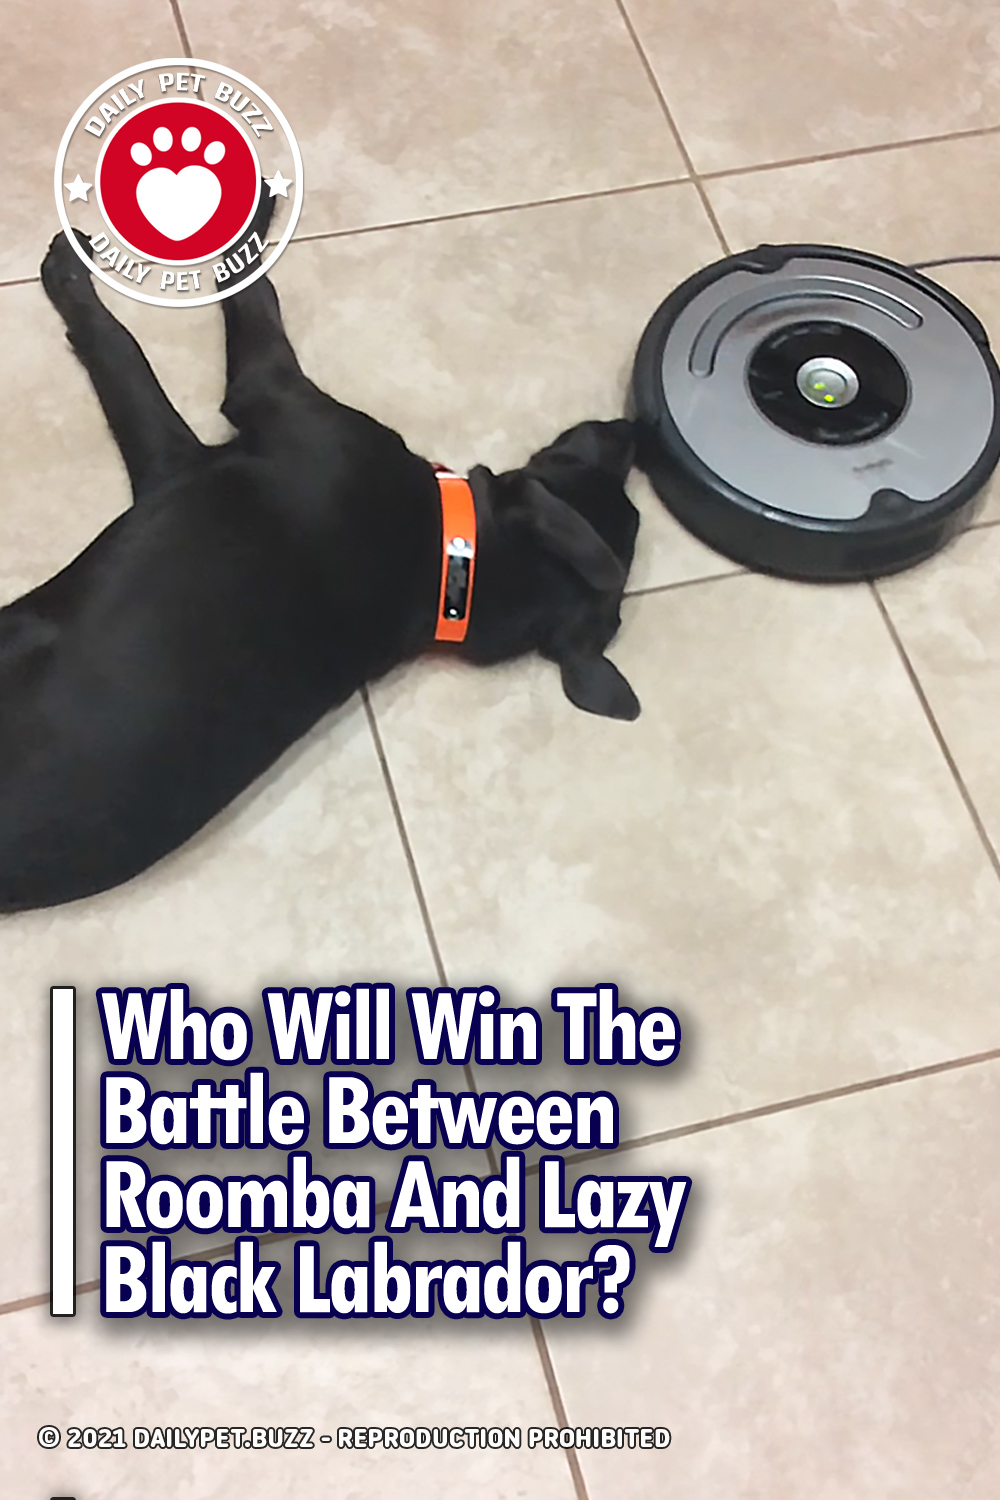 Who Will Win The Battle Between Roomba And Lazy Black Labrador?